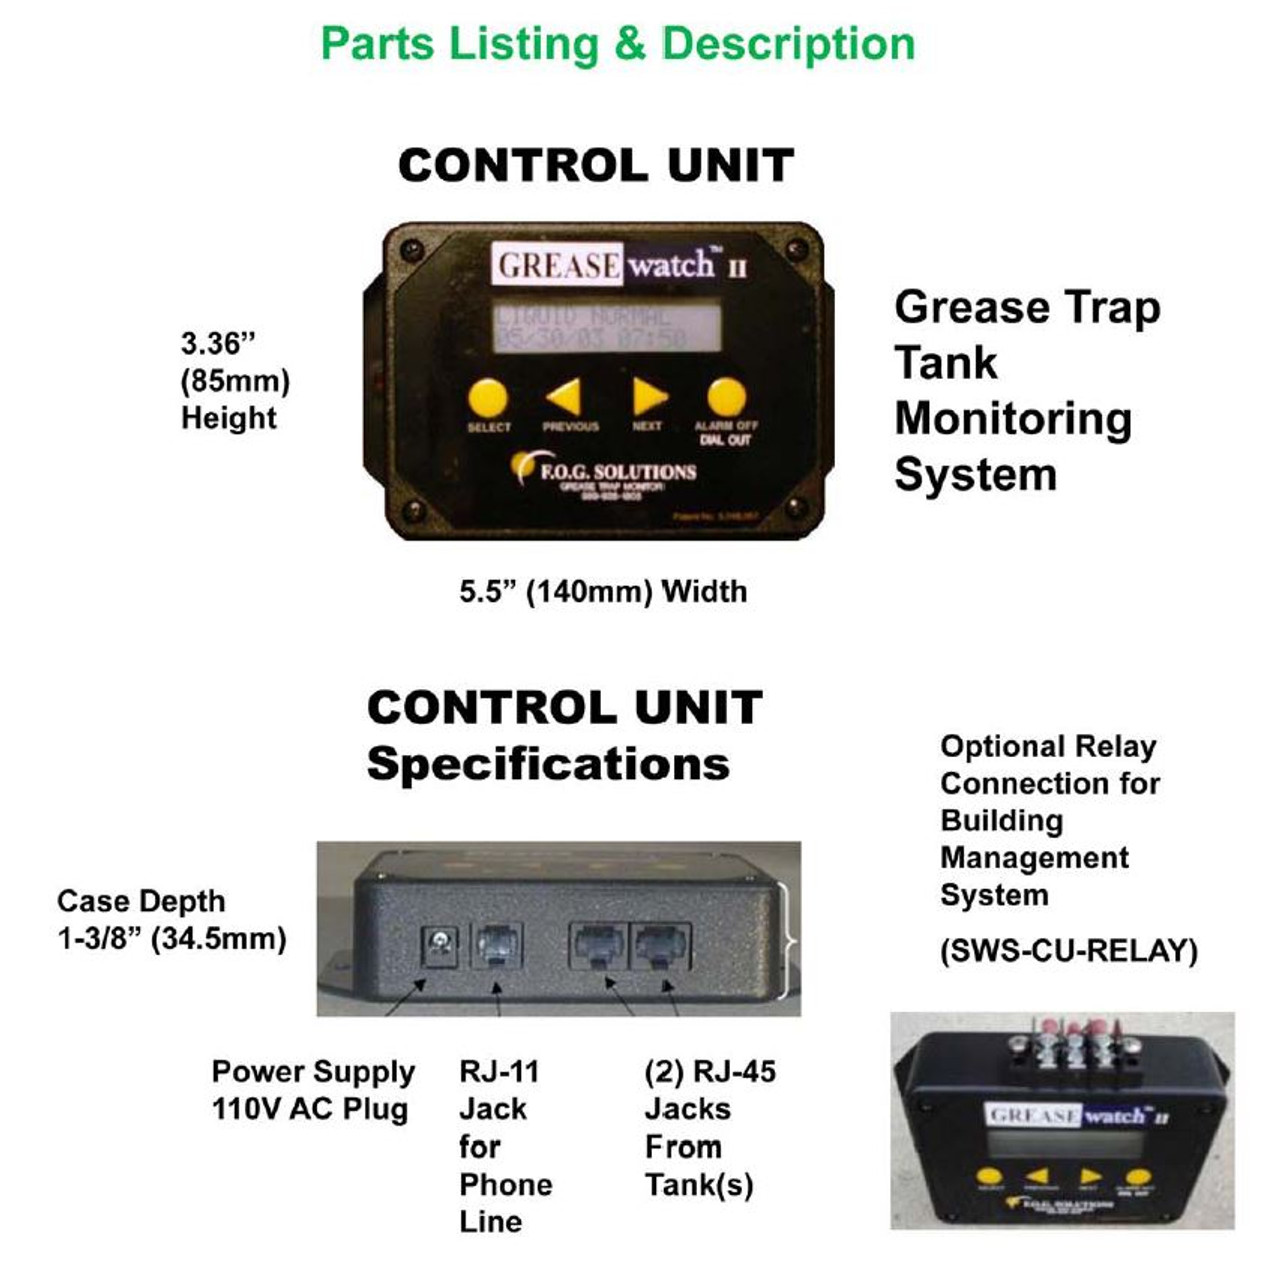 GreaseWatch 2 (Grease Trap Monitoring Alarm with Local Alarm Display)